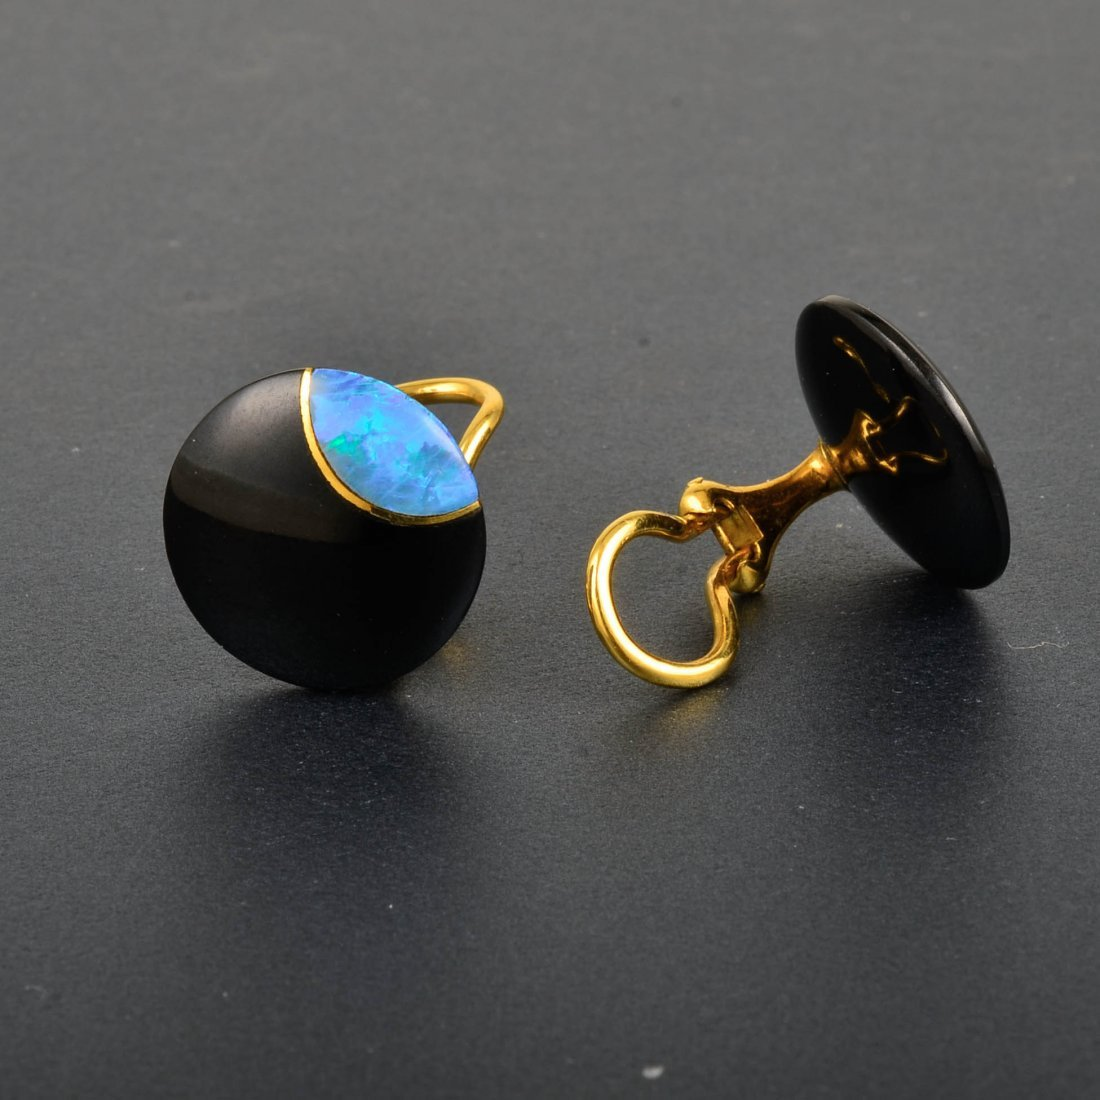 Tiffany & Co., 18K YG Onyx and Opal Earrings - 2